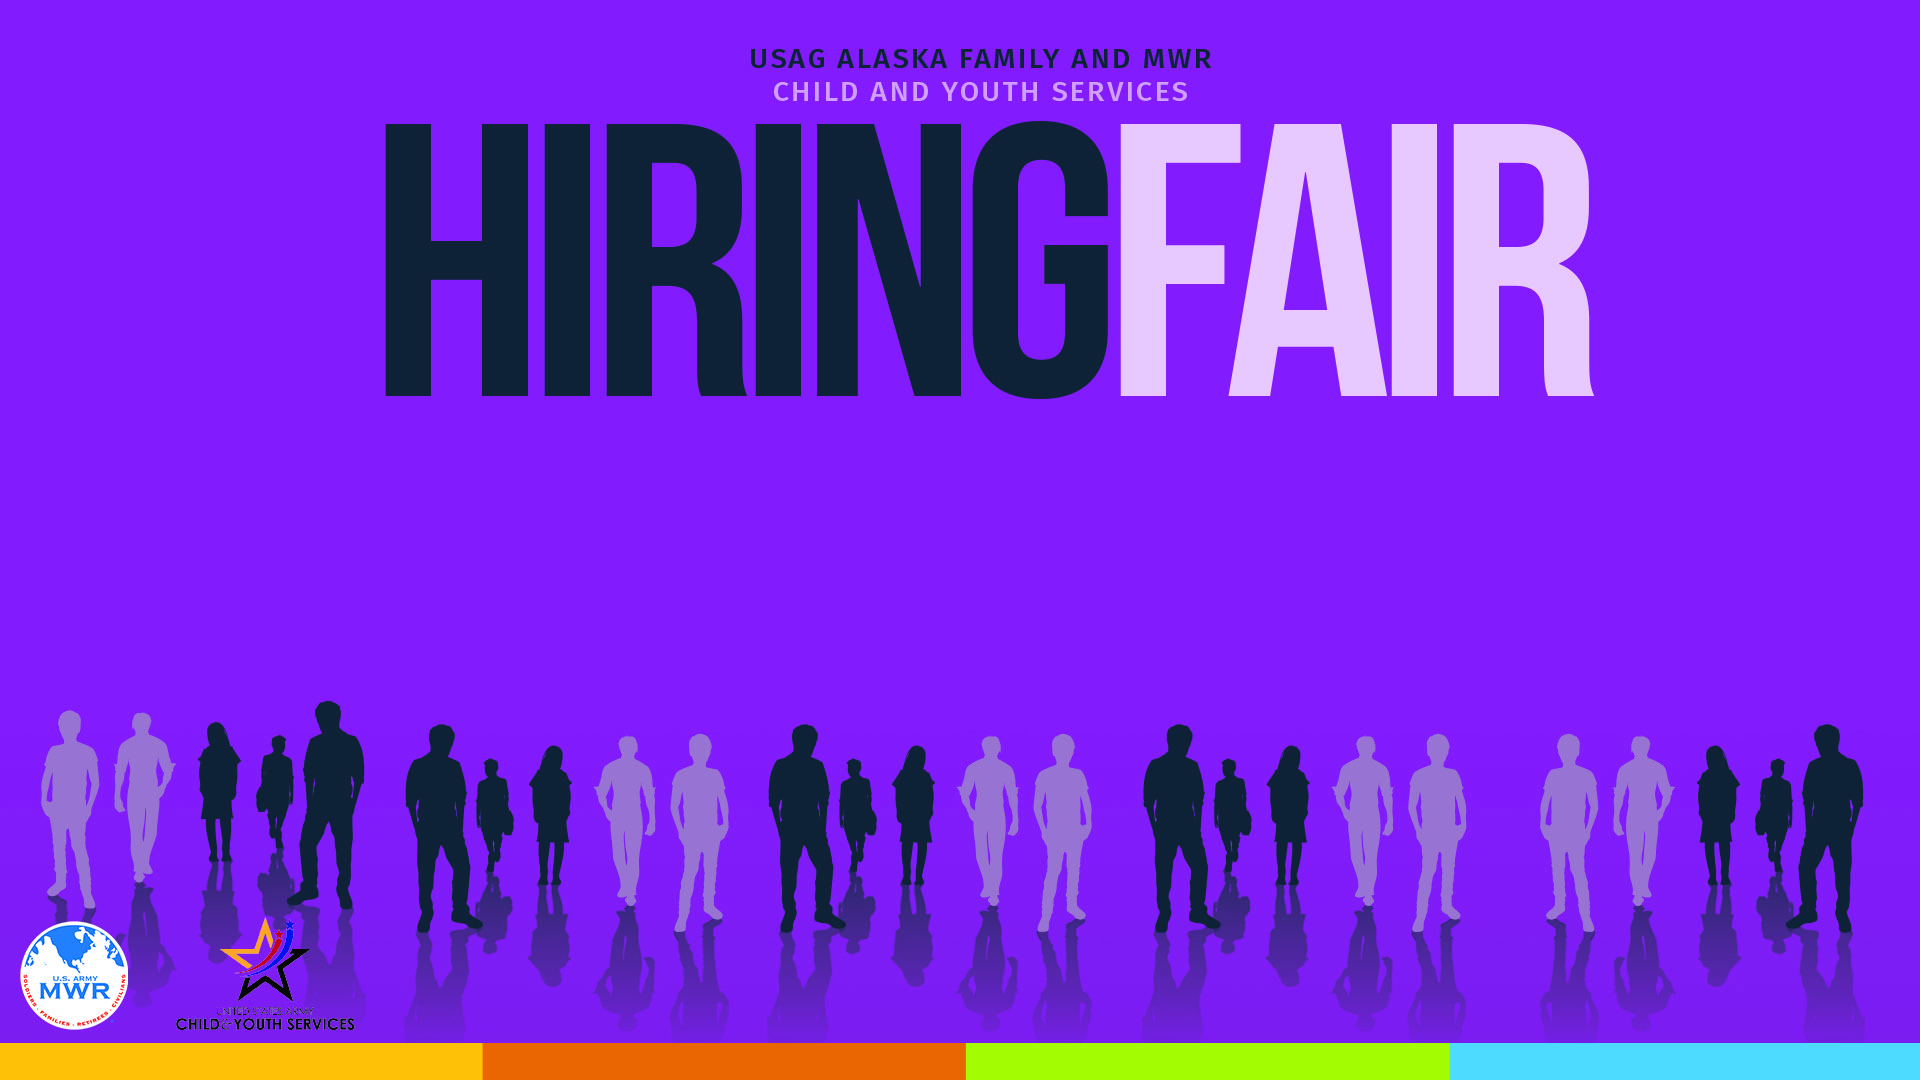 We're Hiring! USAG Alaska Family and MWR Child and Youth Services Hiring Fair